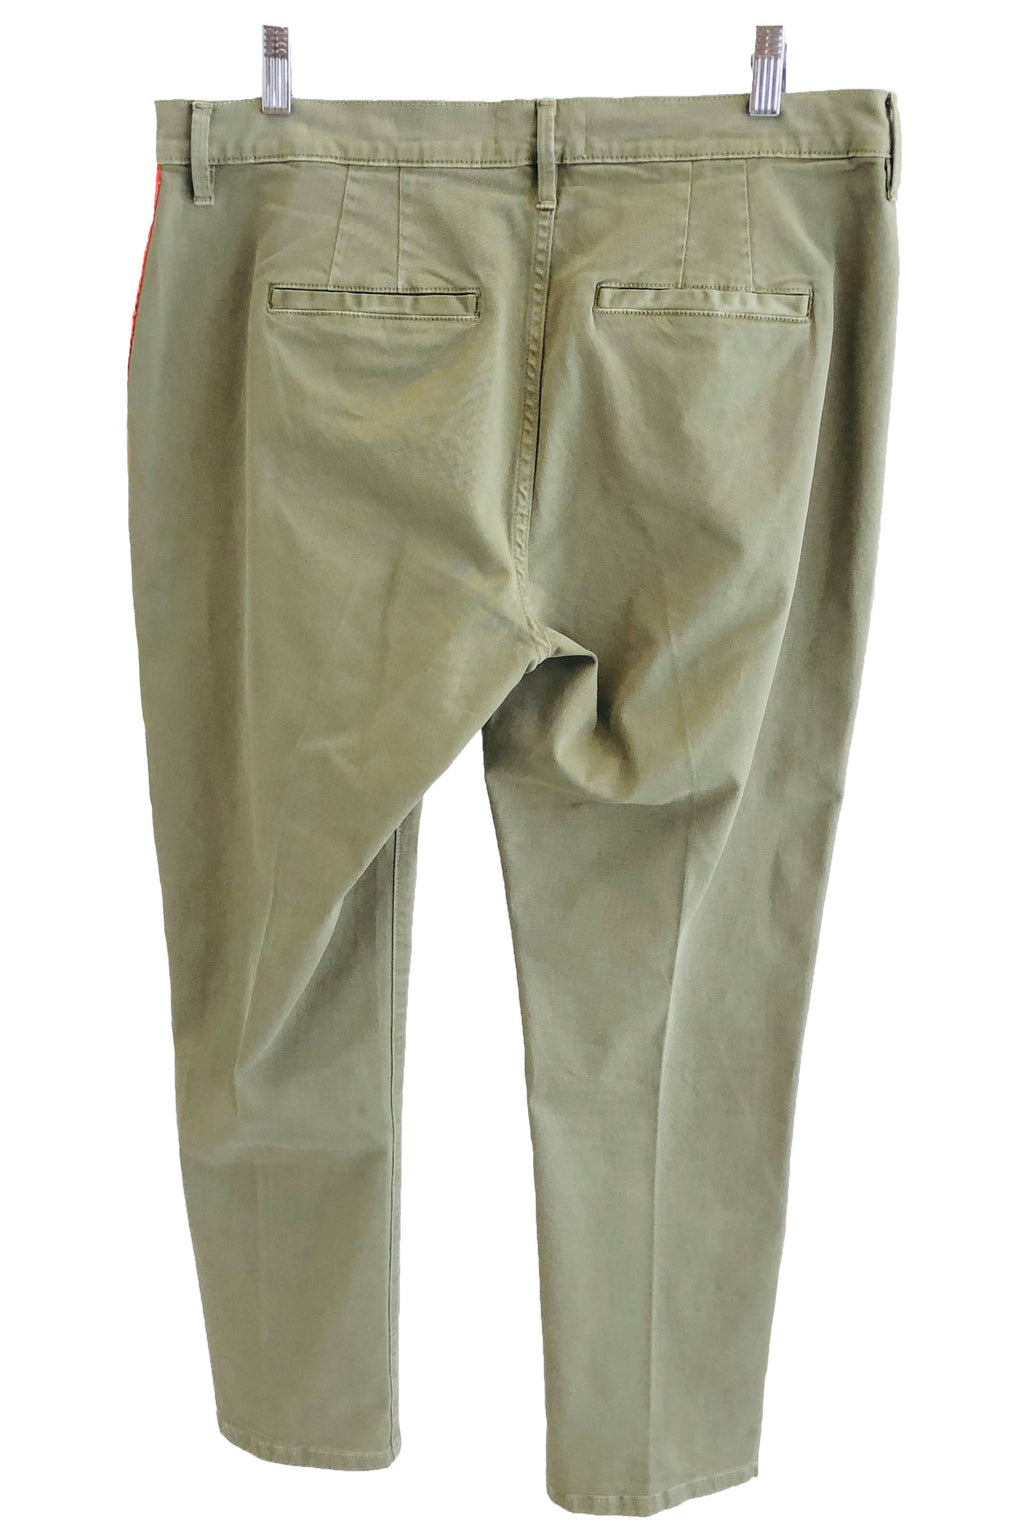 Le Beau Duo Tape Chino in Washed OD